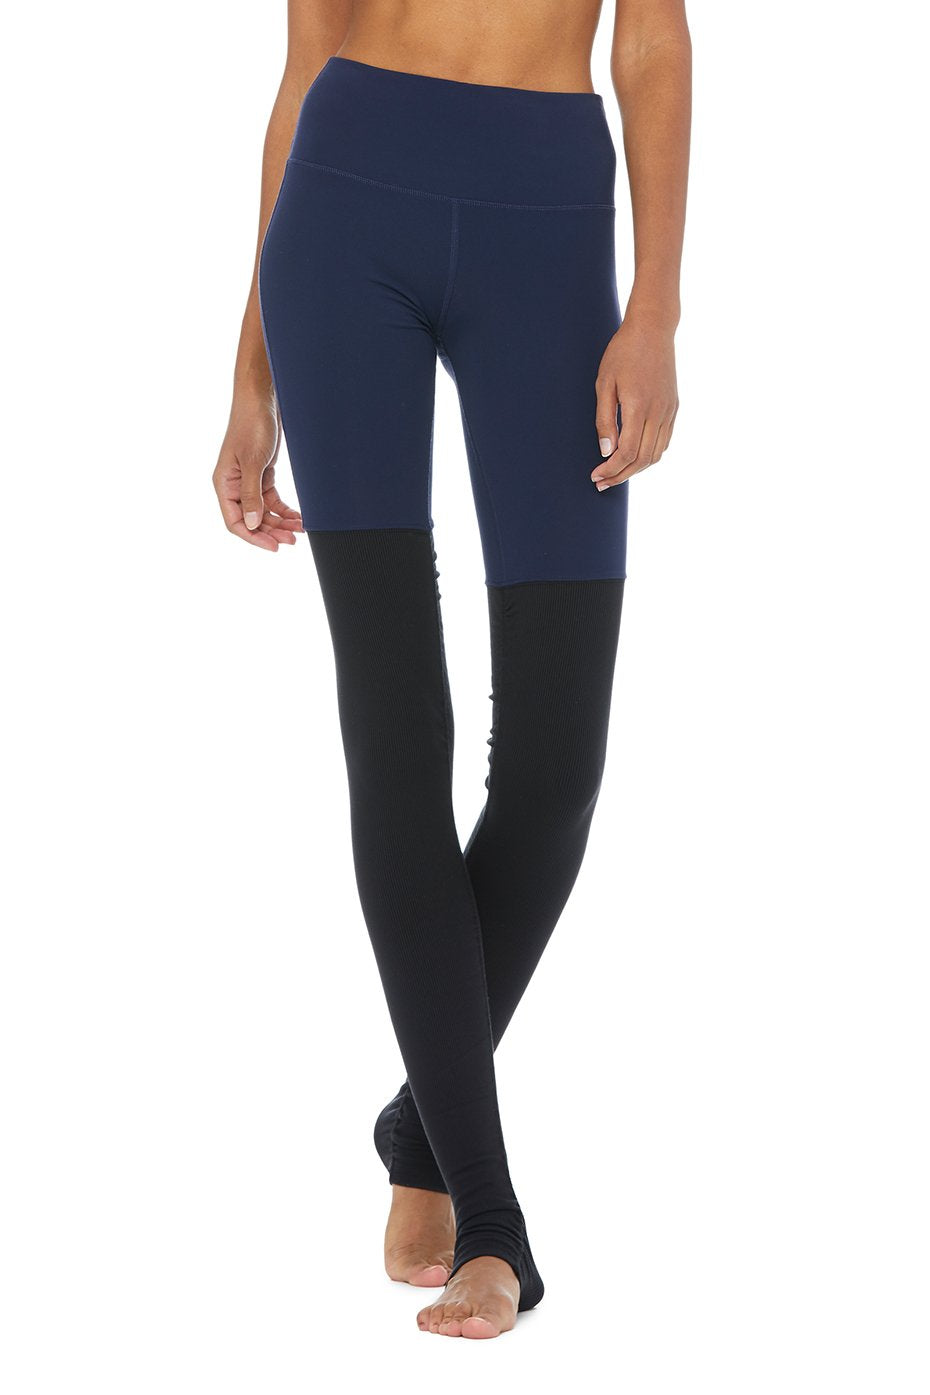 Alo Yoga High-Waist Goddess Legging - Rich Navy/Black